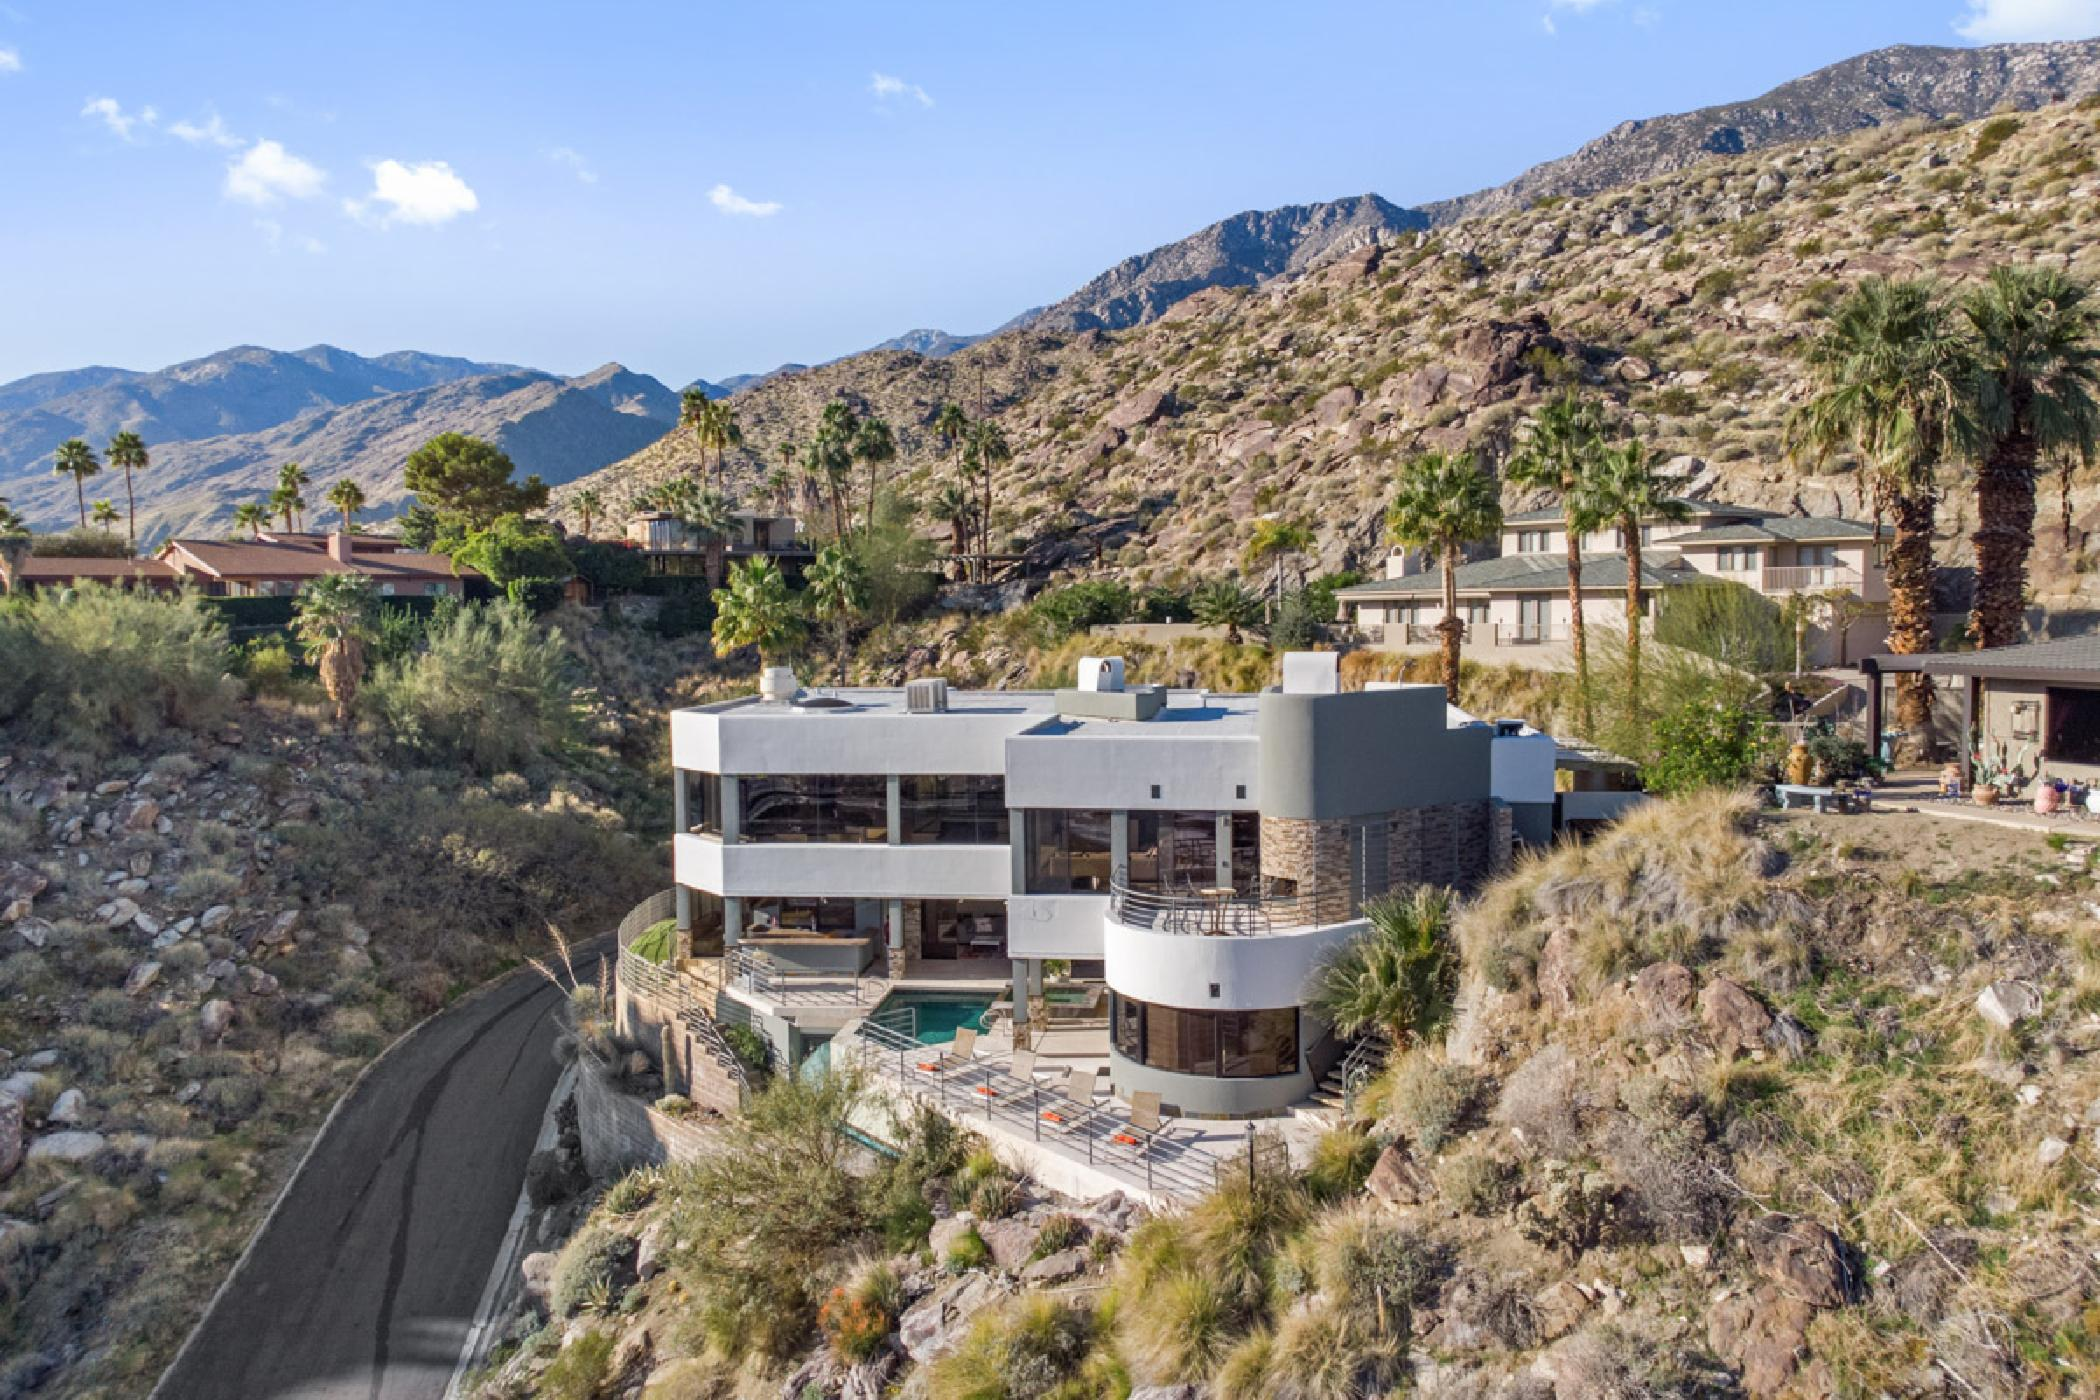 Awe Inspiring Villa overlooking Palm Springs with Infinity Pool and Panoramic Views